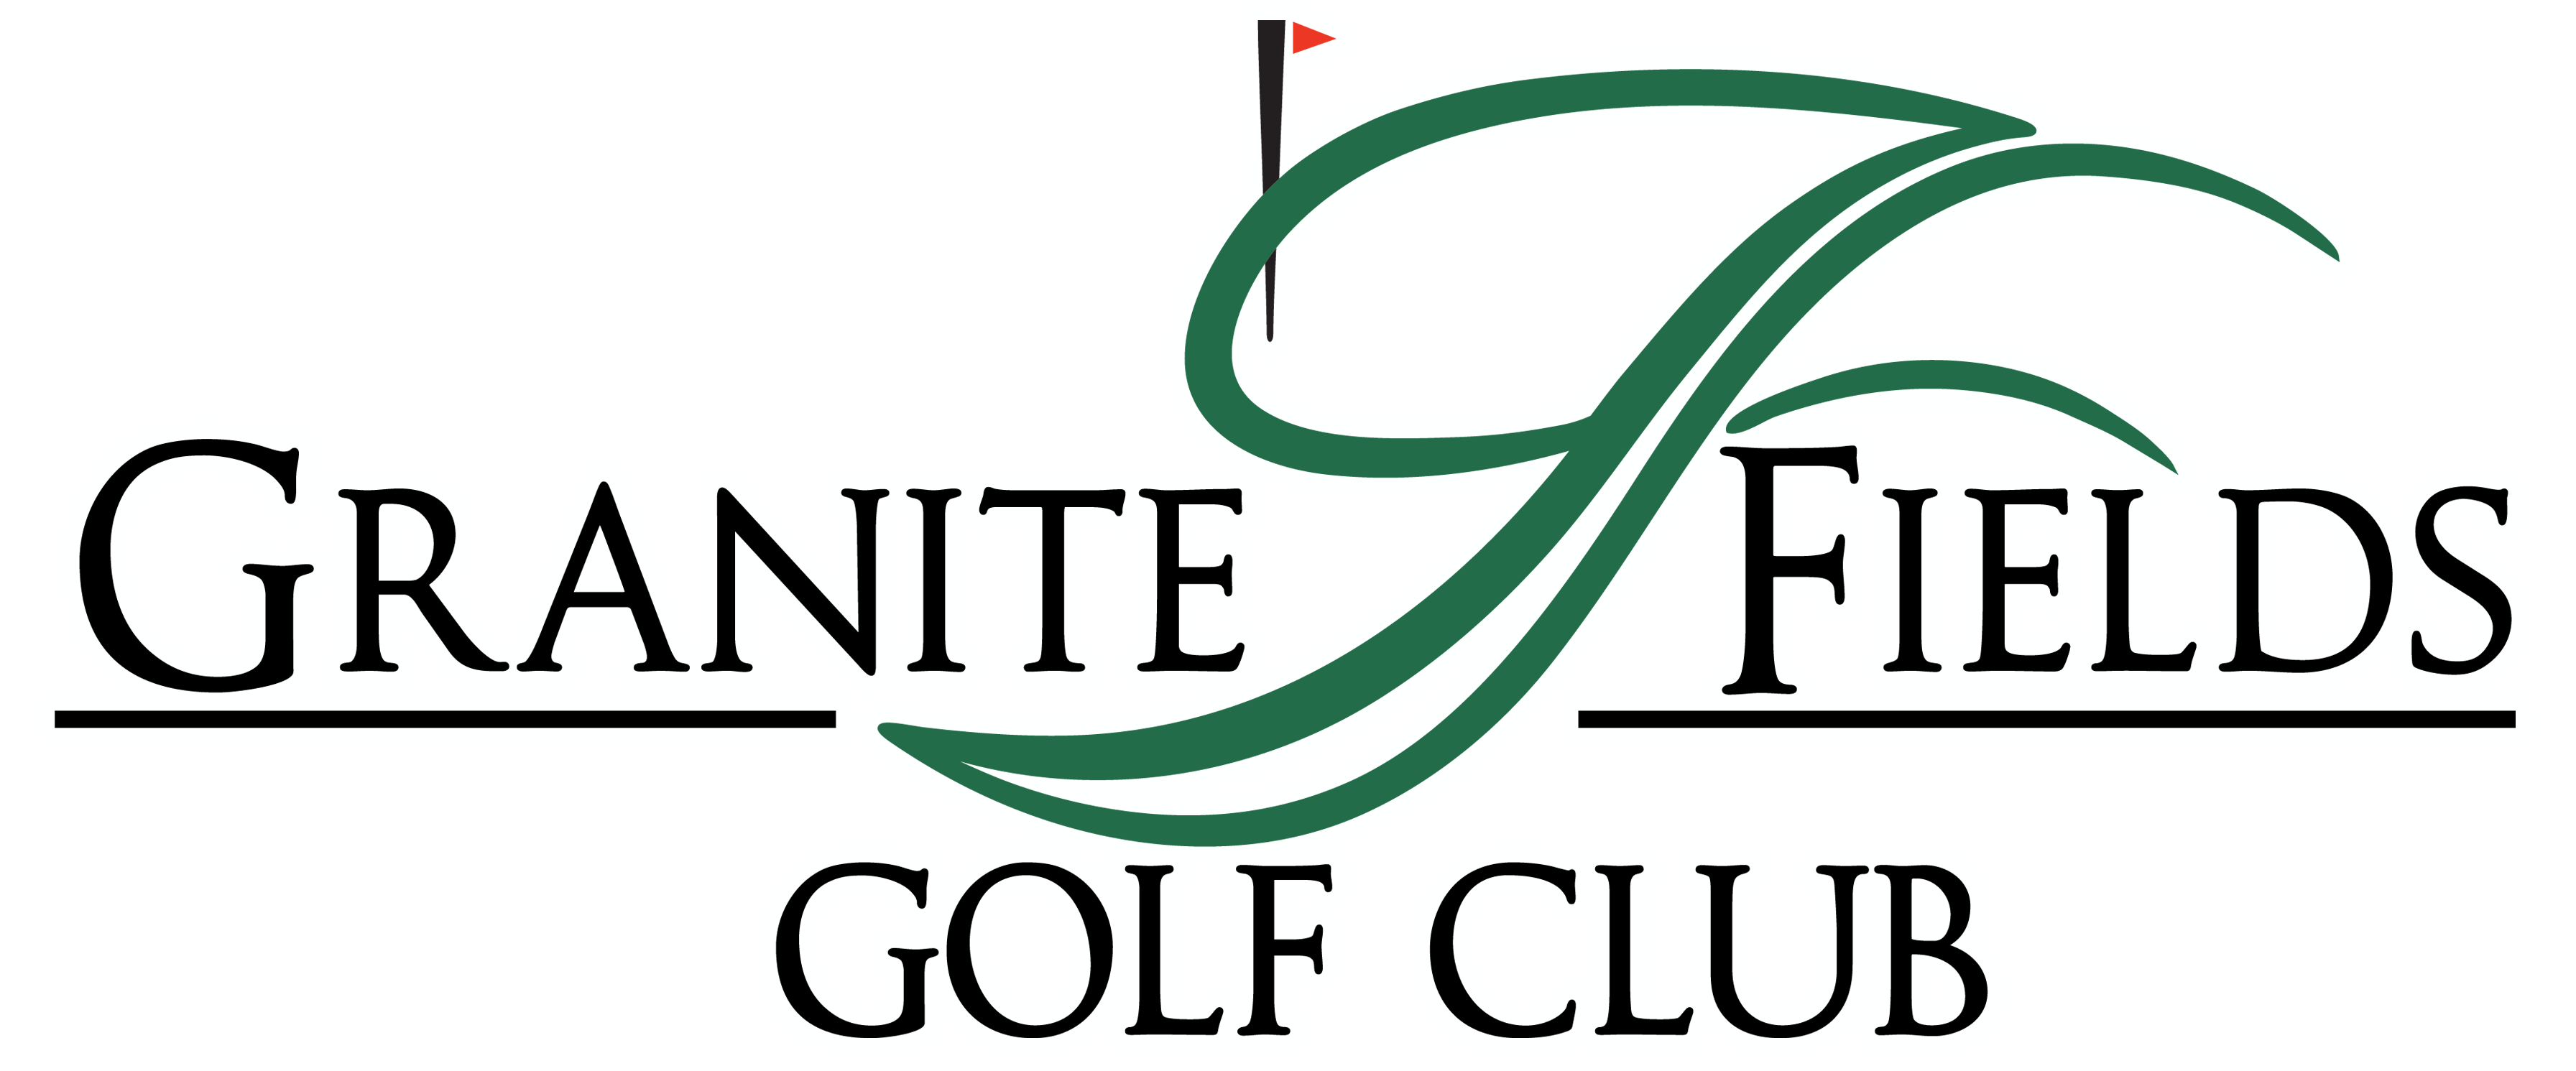 Granite Fields Golf Club